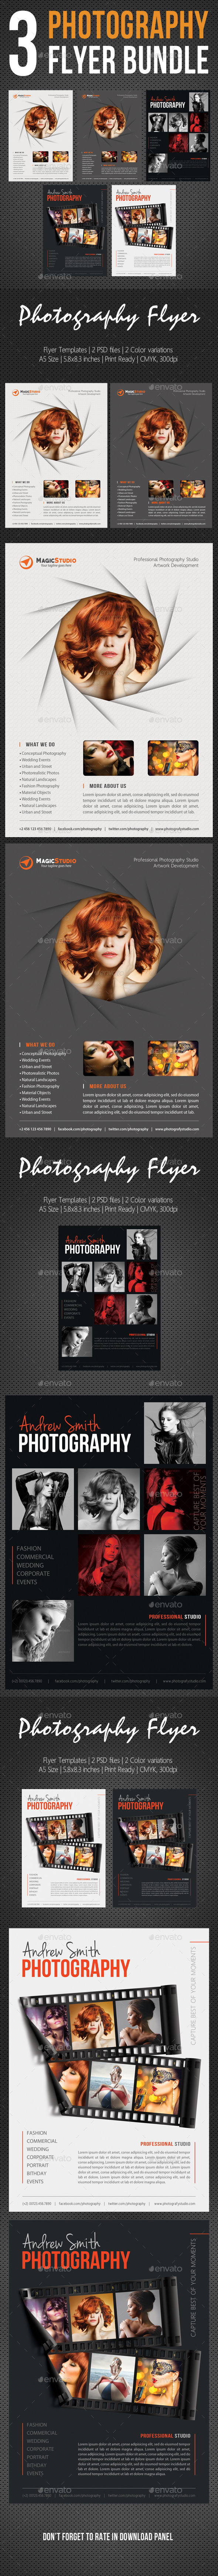 3 in 1 Photography Multipurpose Flyer Bundle 06 - Corporate Flyers